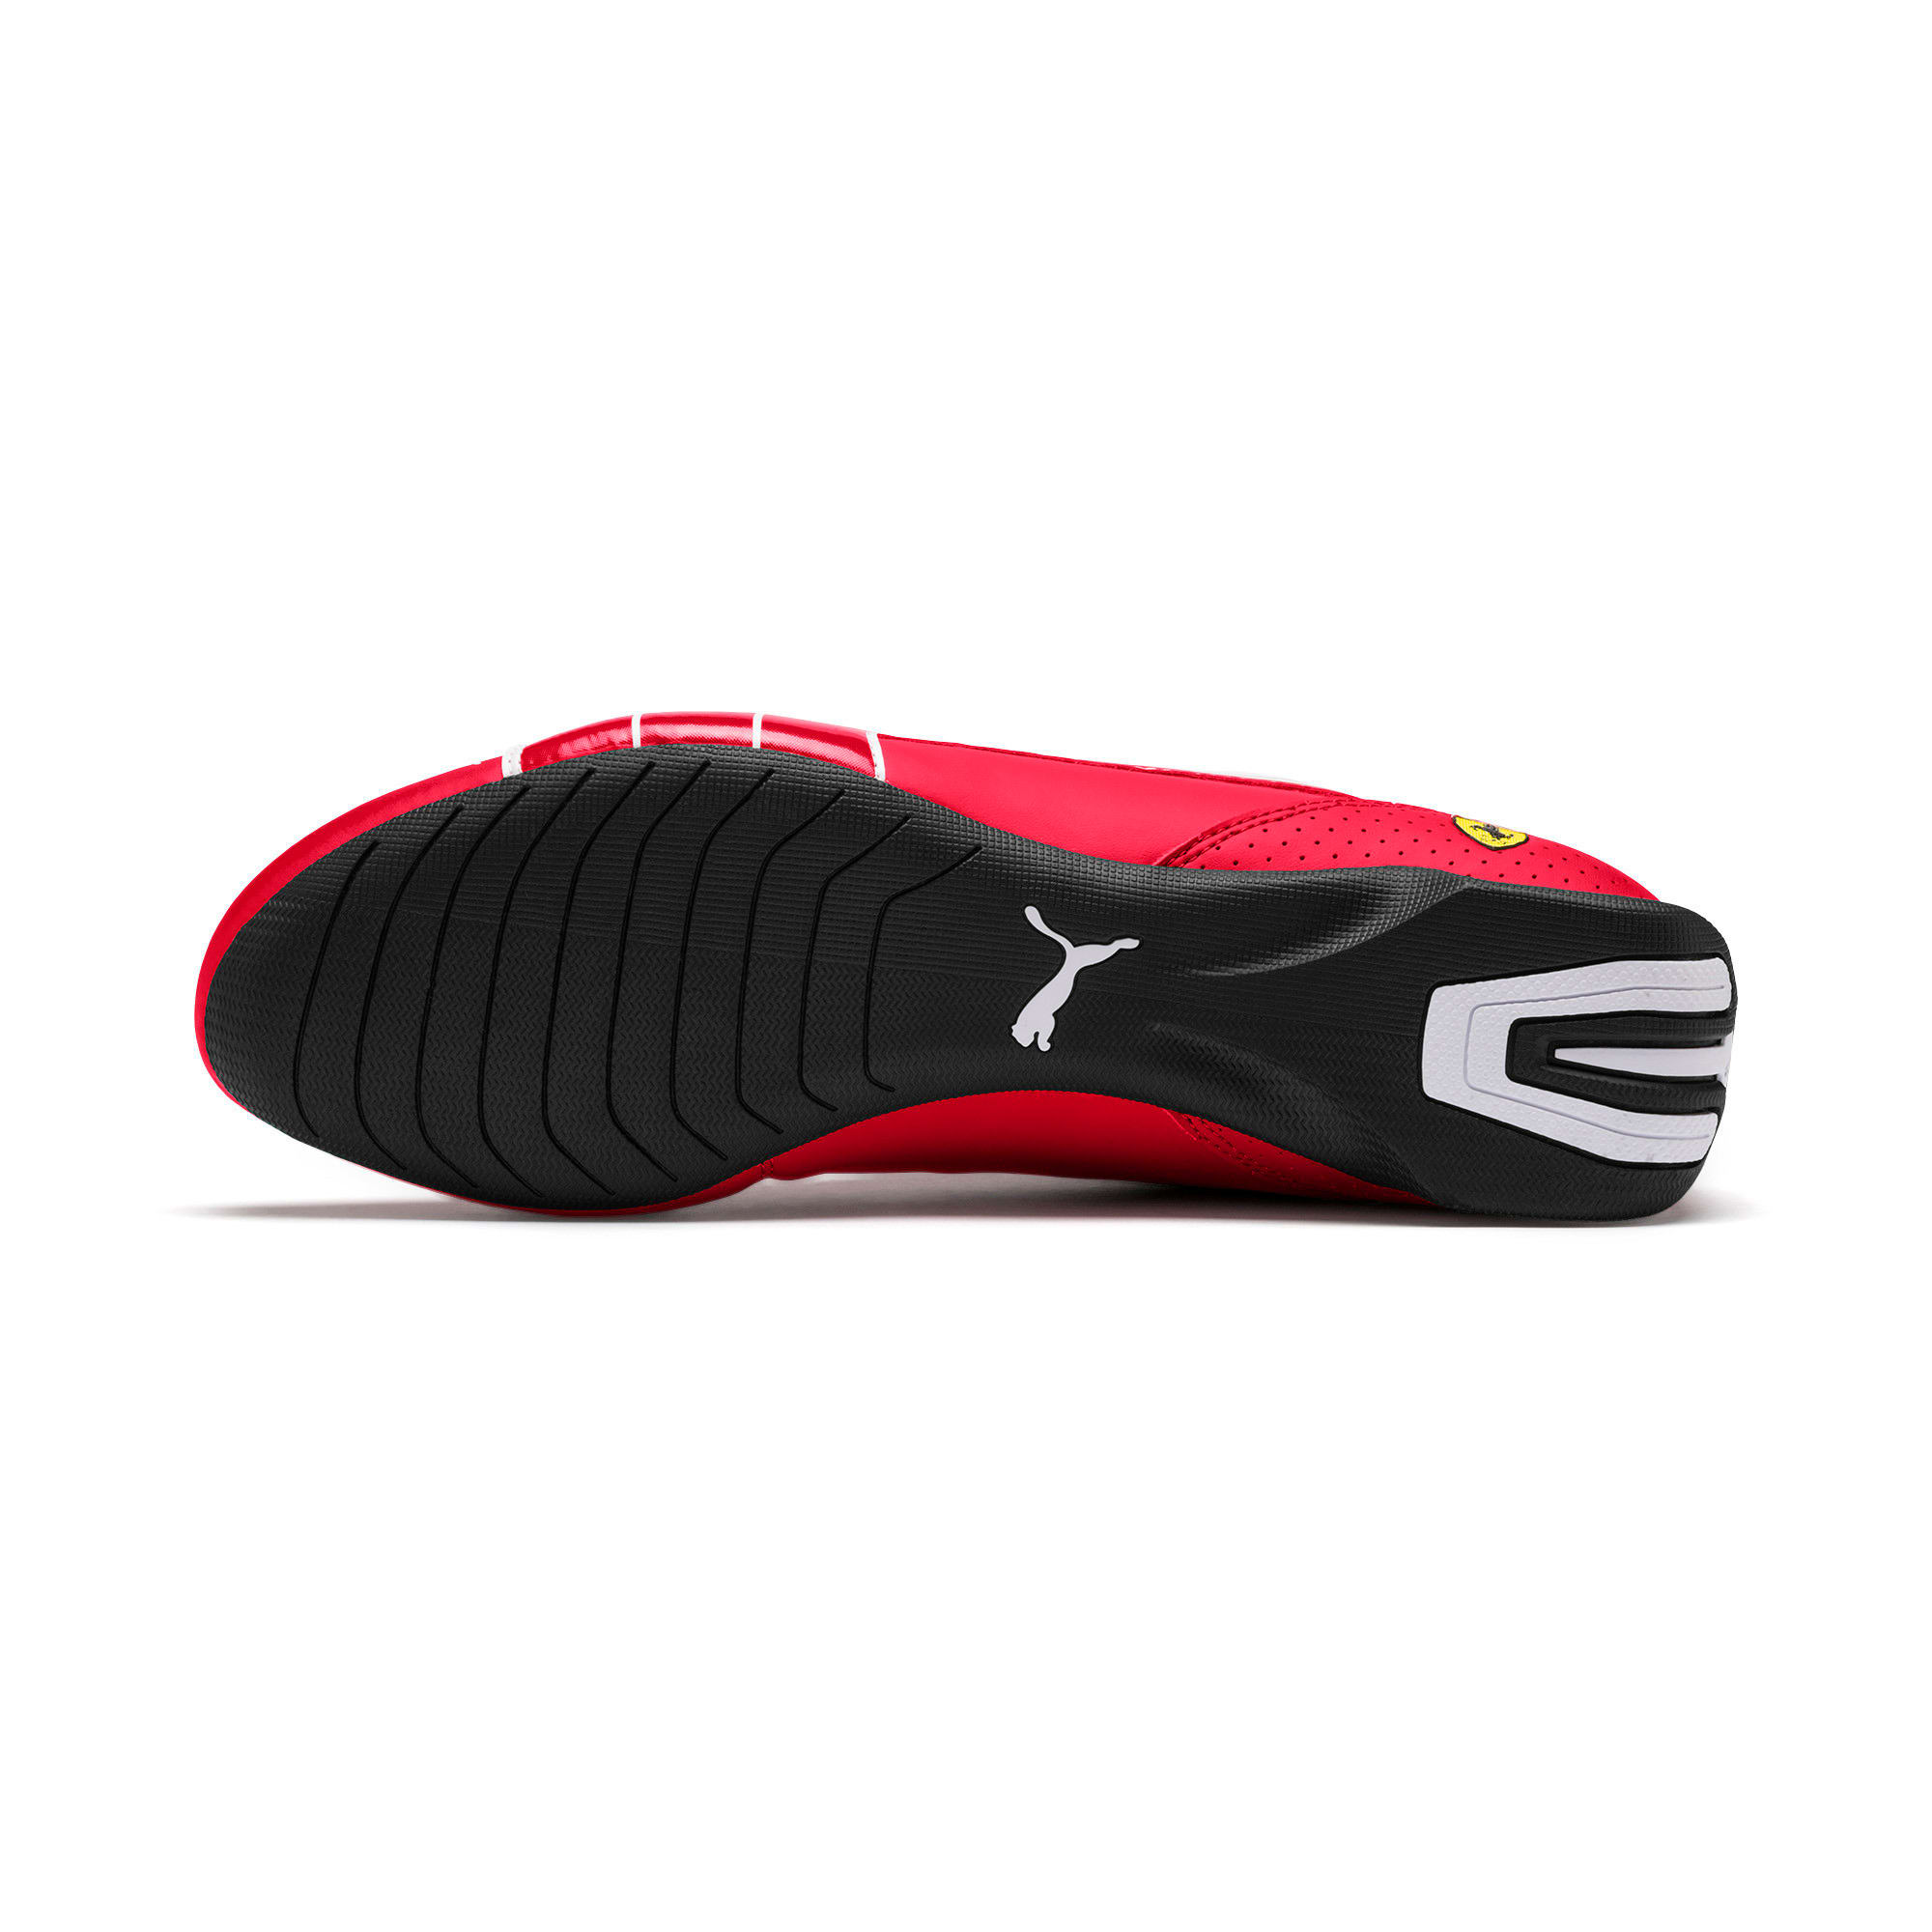 Thumbnail 5 of Ferrari Future Kart Cat Trainers, Rosso Corsa-Puma Black, medium